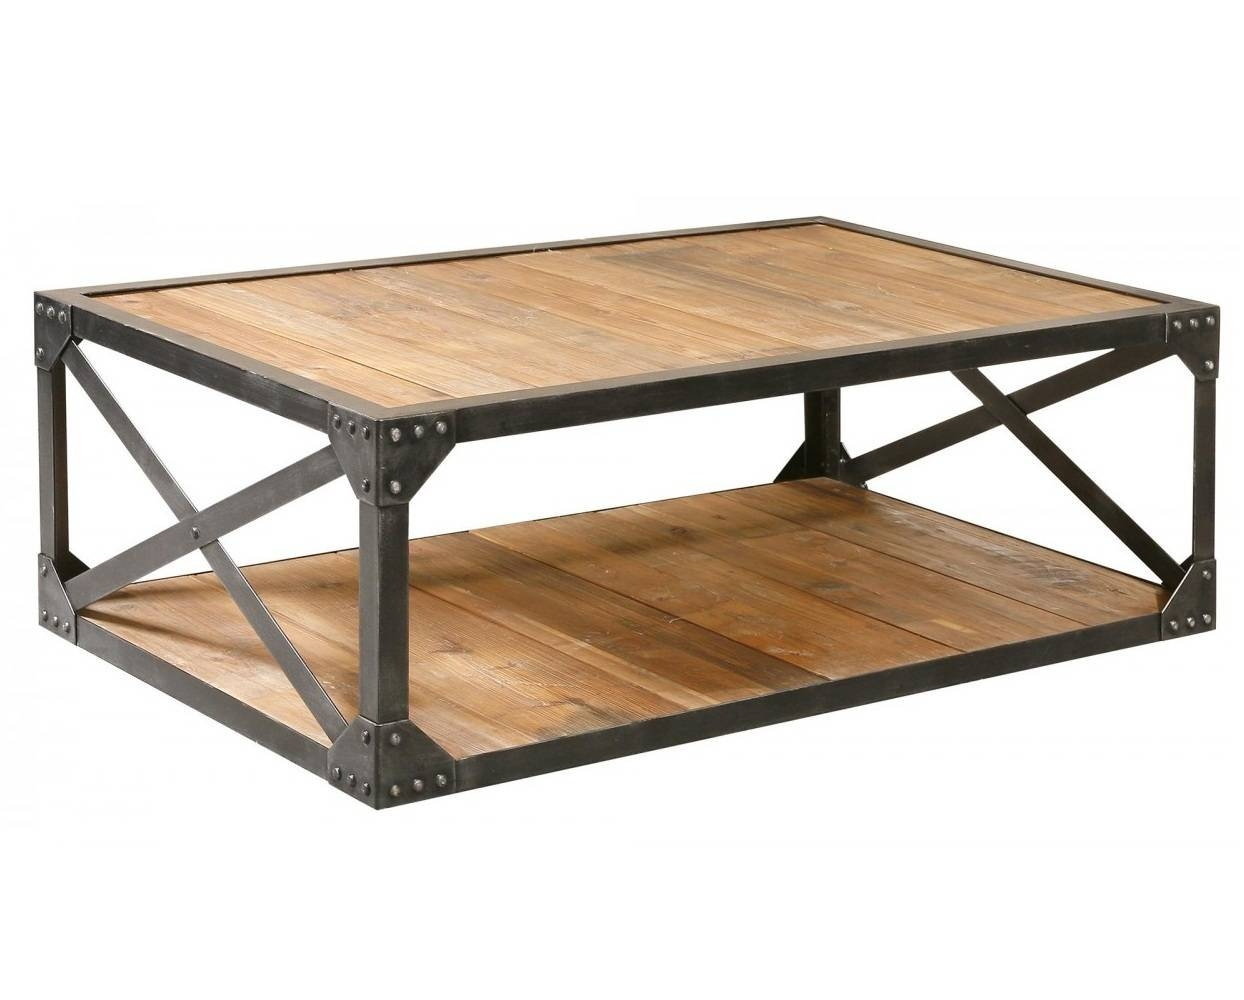 Coffee Table: Astounding Metal Coffee Table Ideas Wood Coffee throughout Metal Coffee Tables (Image 7 of 30)